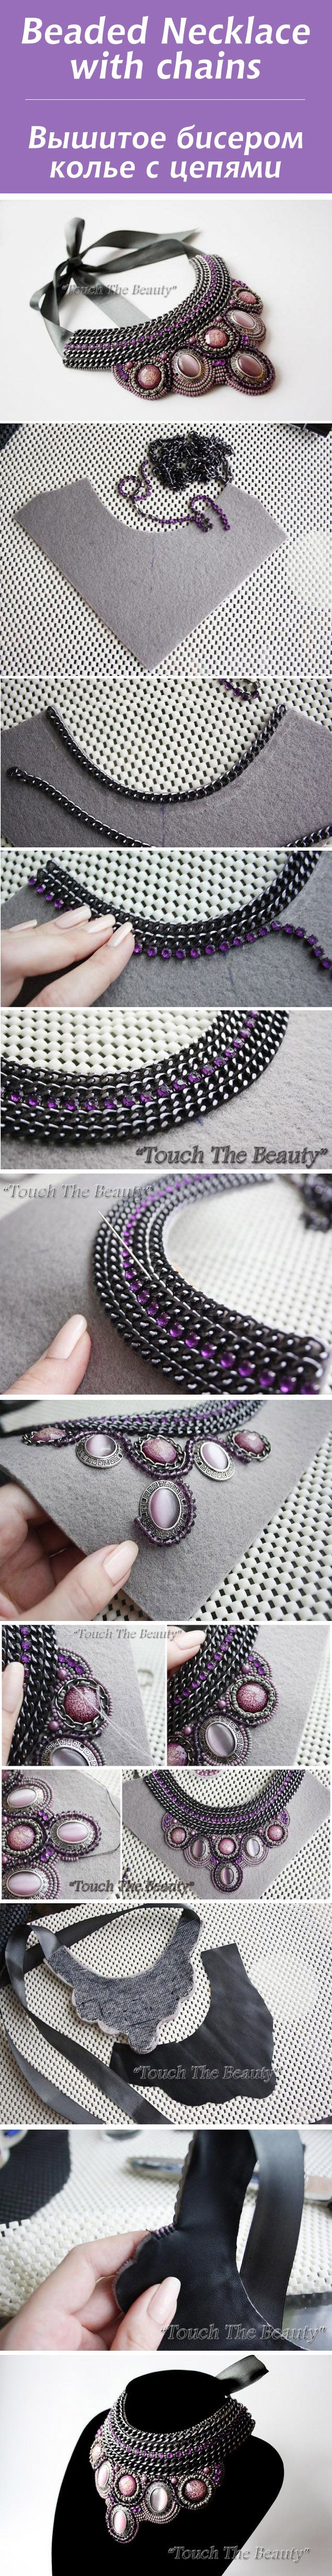 ������� ������� ����� � ������ / Beaded Necklace with chains #bead #tutorial